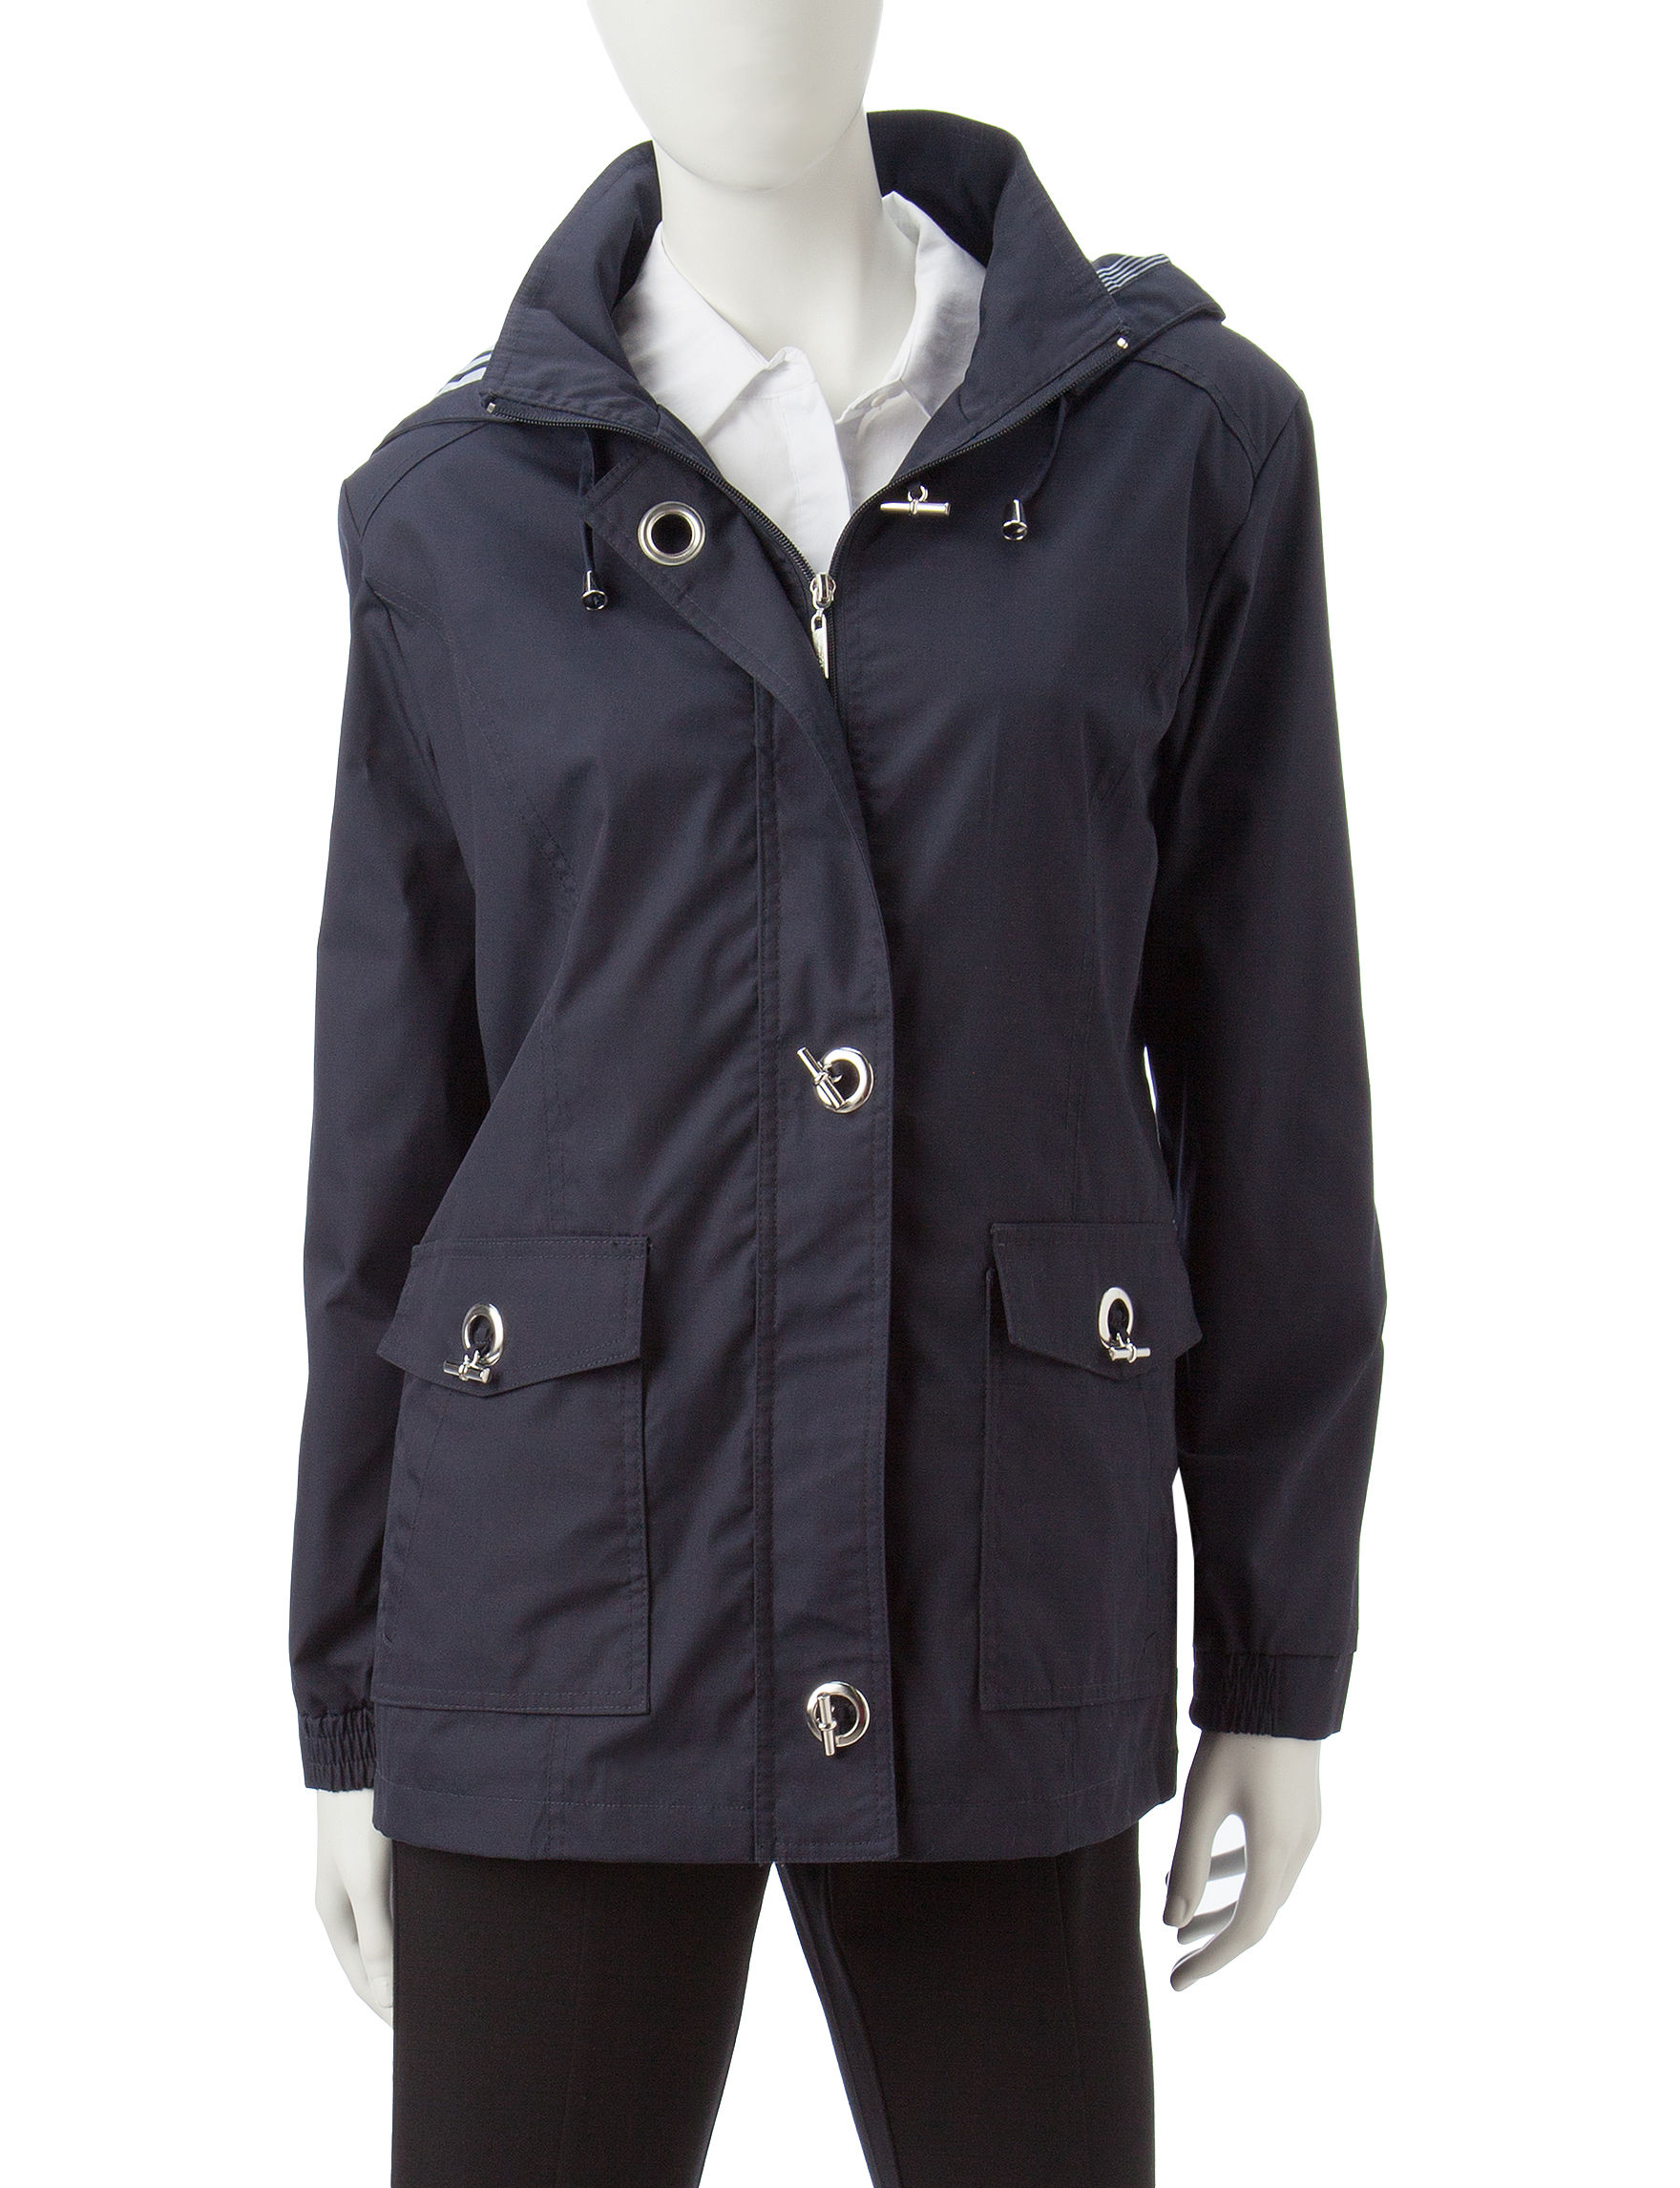 Mackintosh Navy Lightweight Jackets & Blazers Rain & Snow Jackets